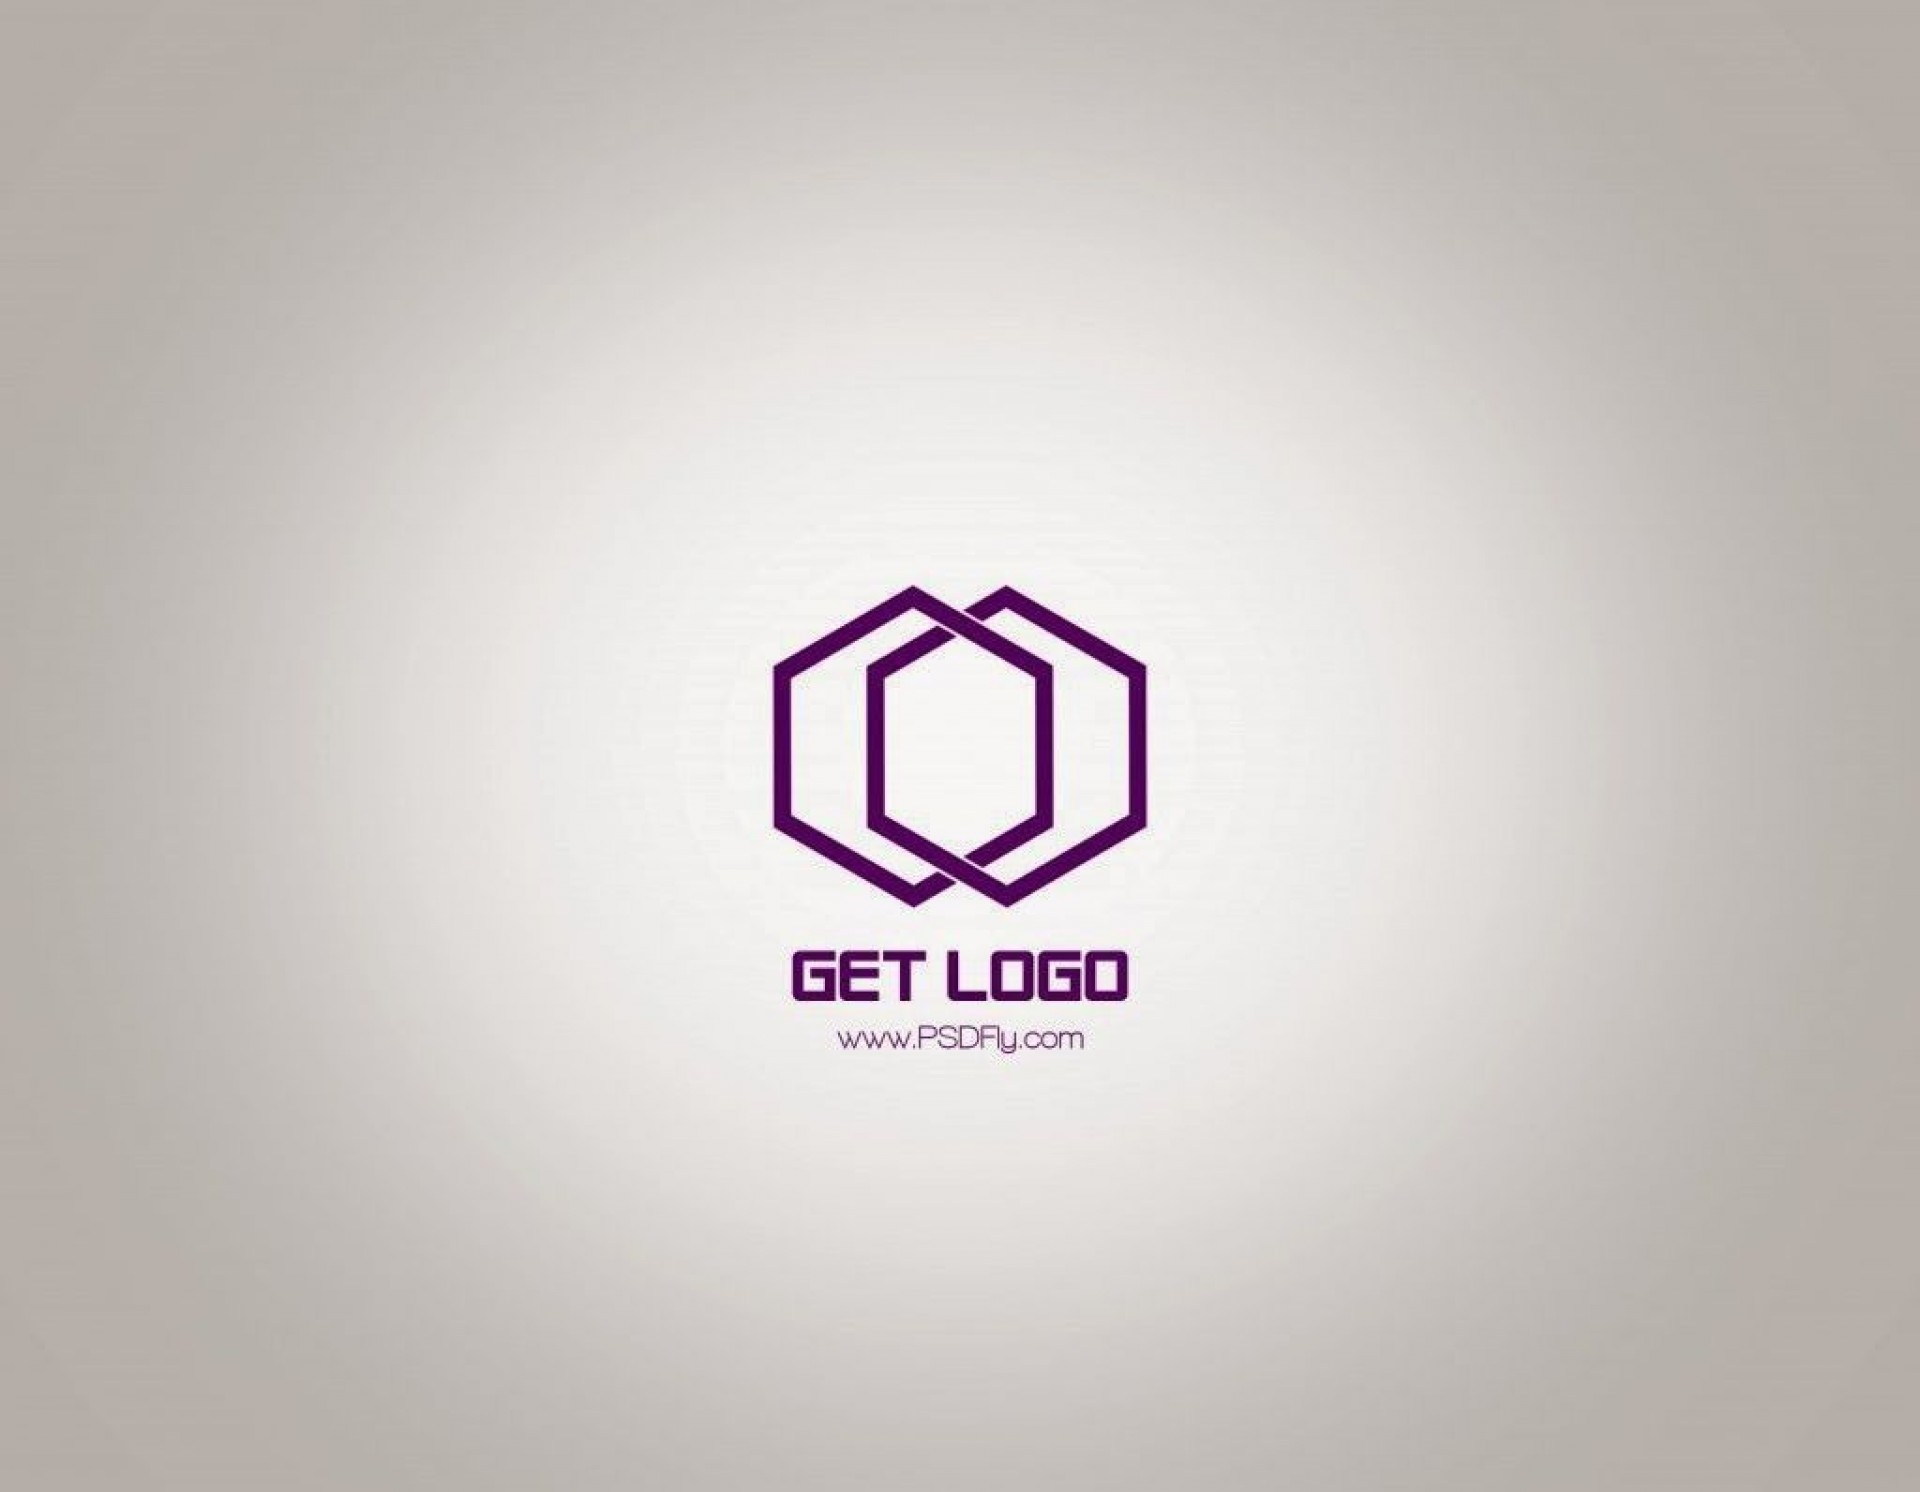 000 Imposing Free Busines Logo Template Inspiration  Templates Design Download Powerpoint1920